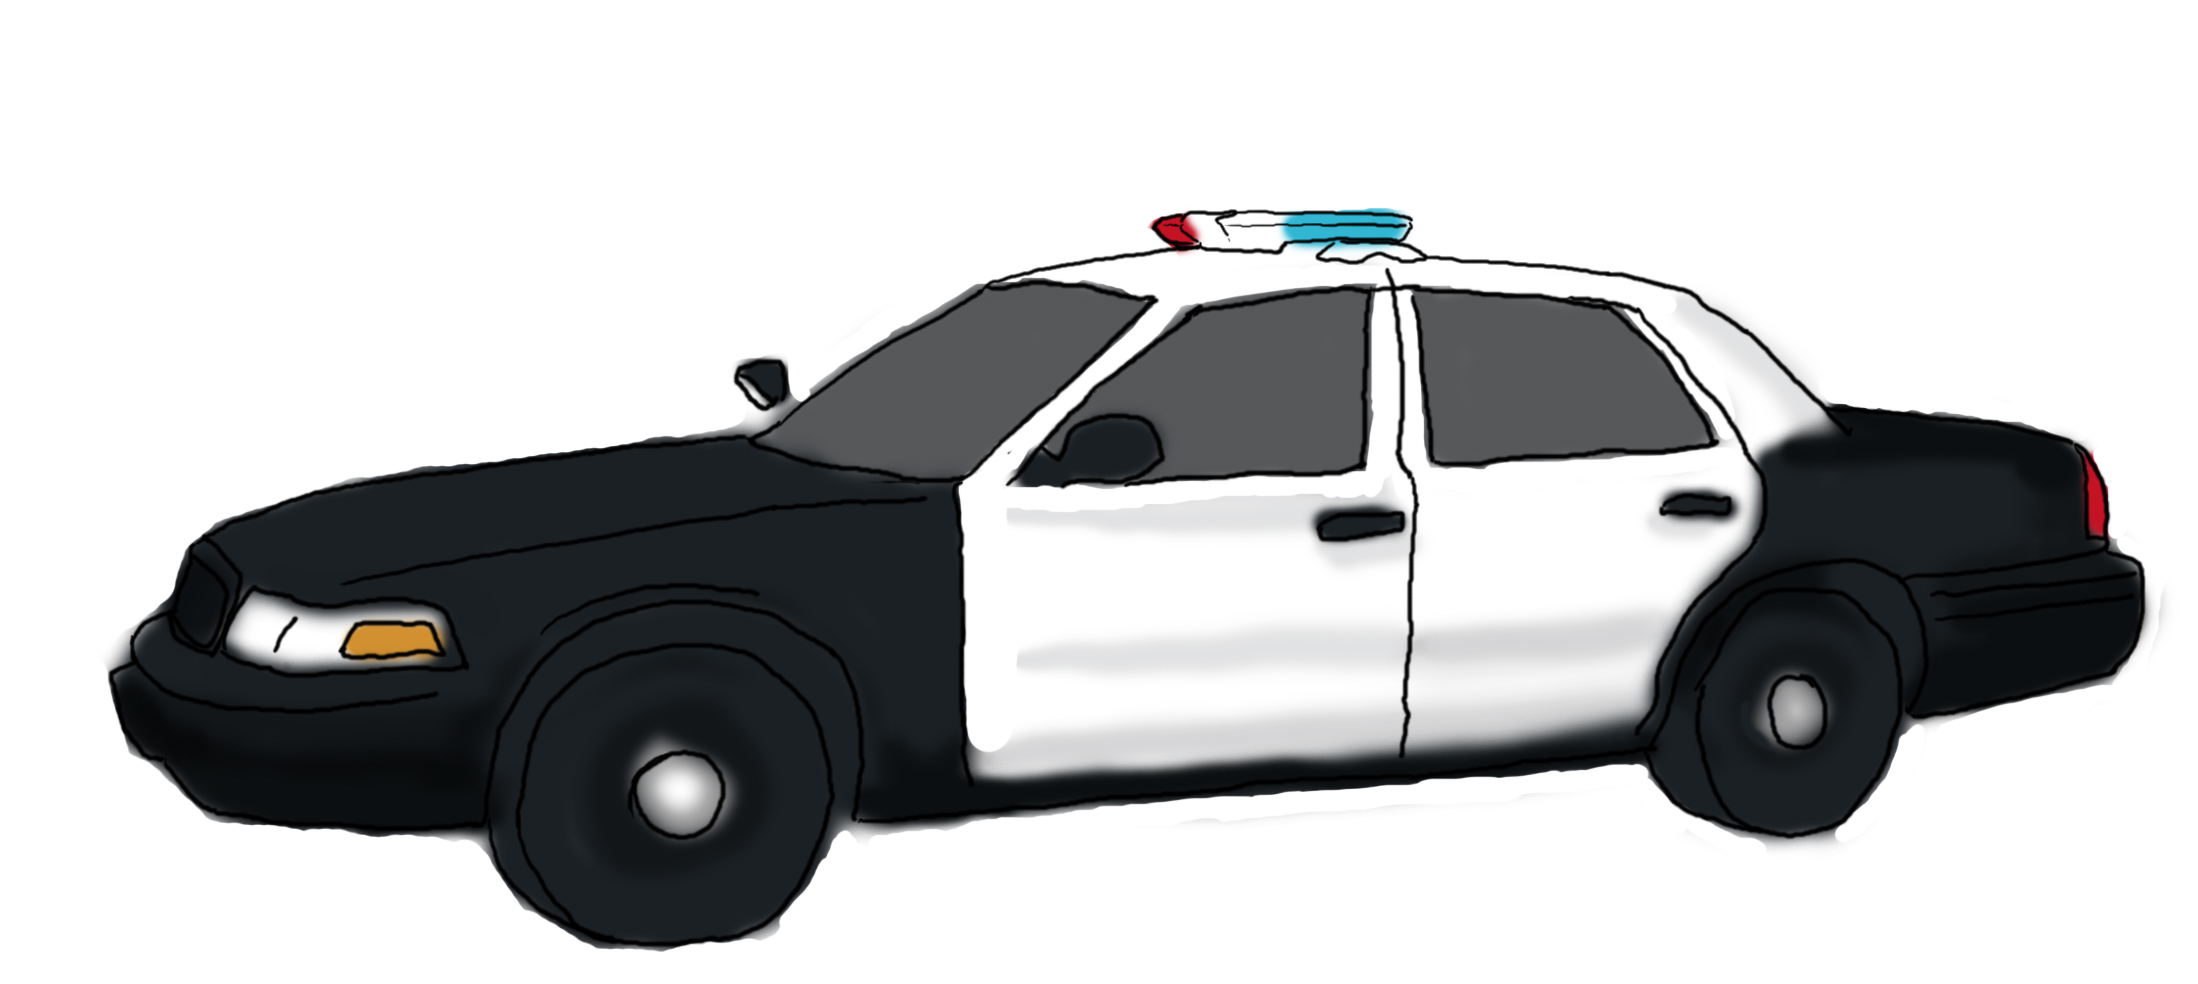 How To Draw Police Vehicles